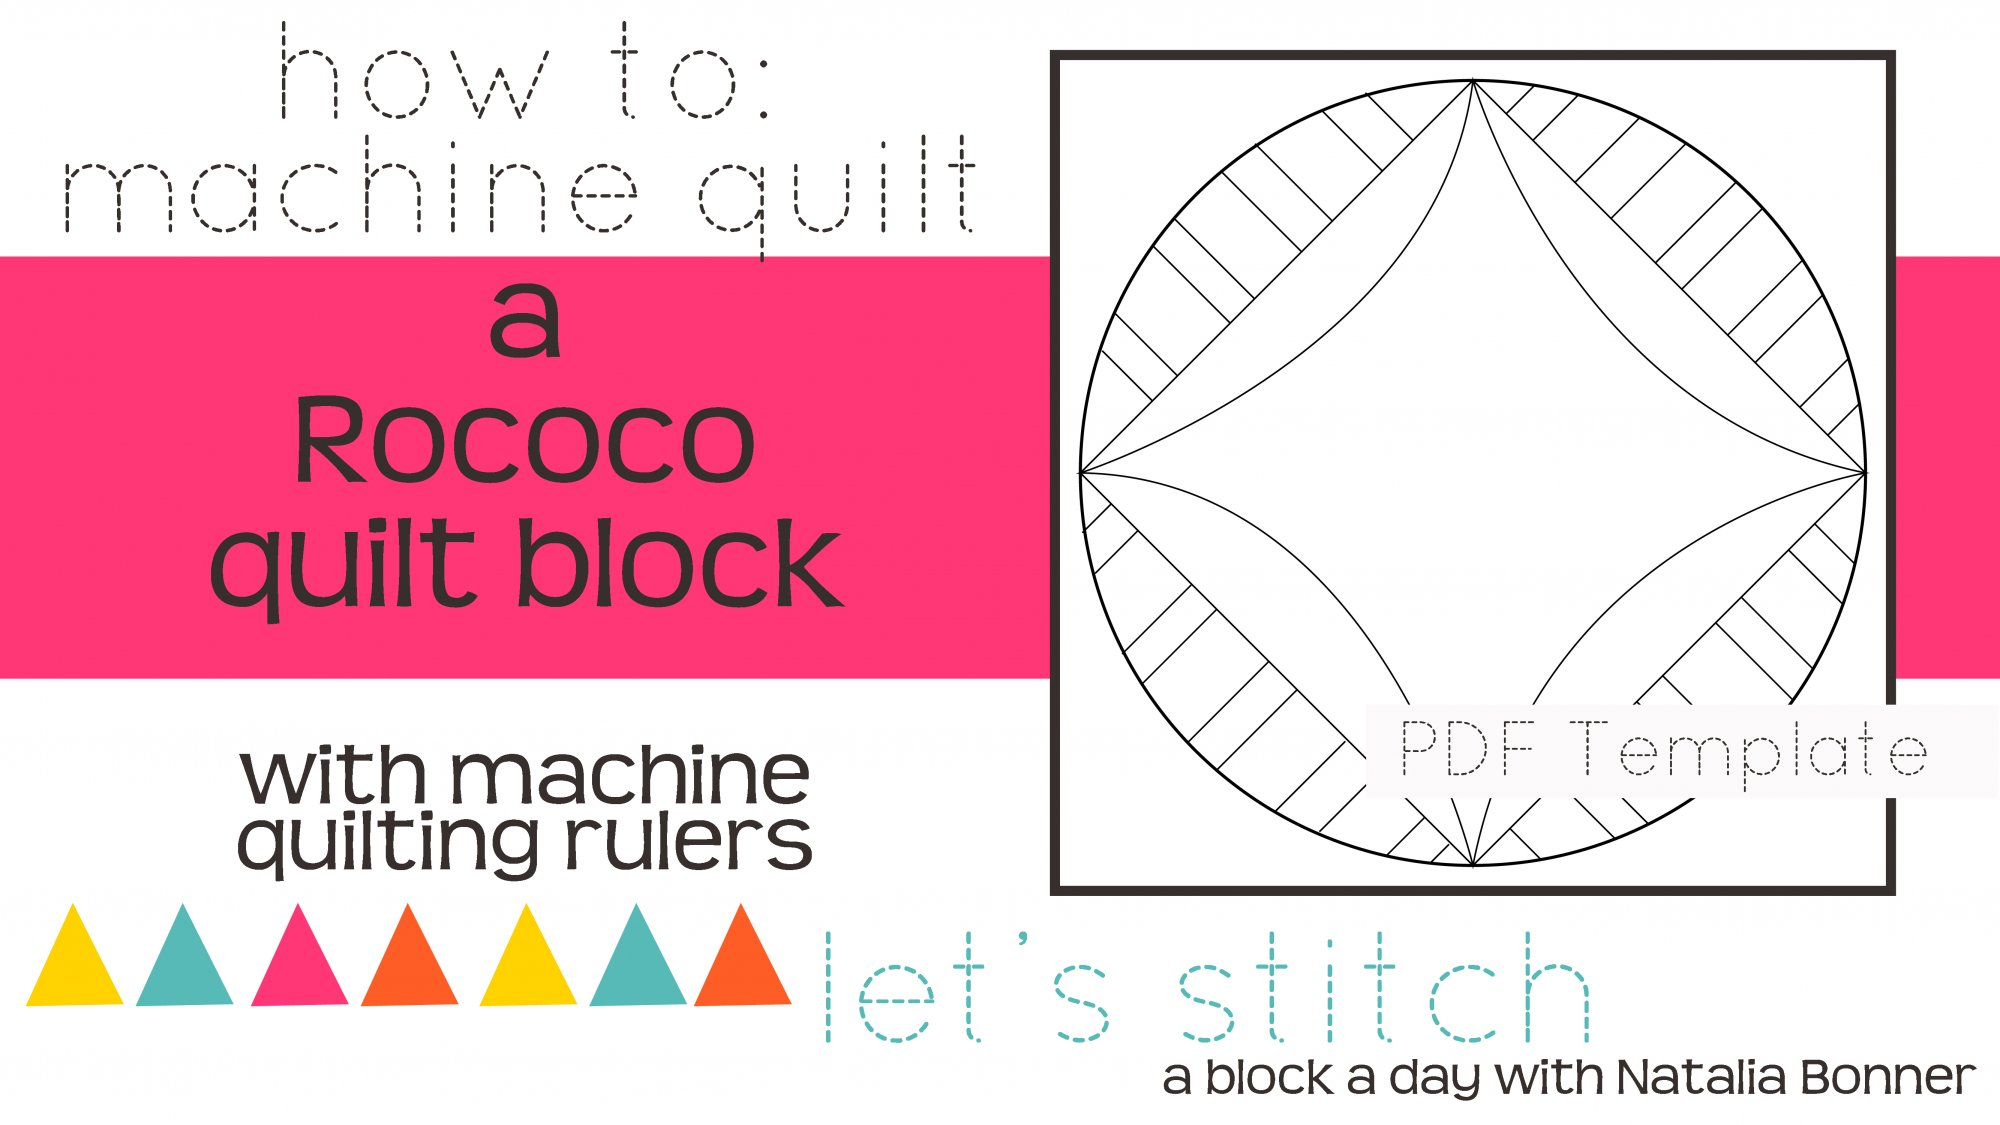 Let's Stitch - A Block a Day With Natalia Bonner - PDF - Rocco